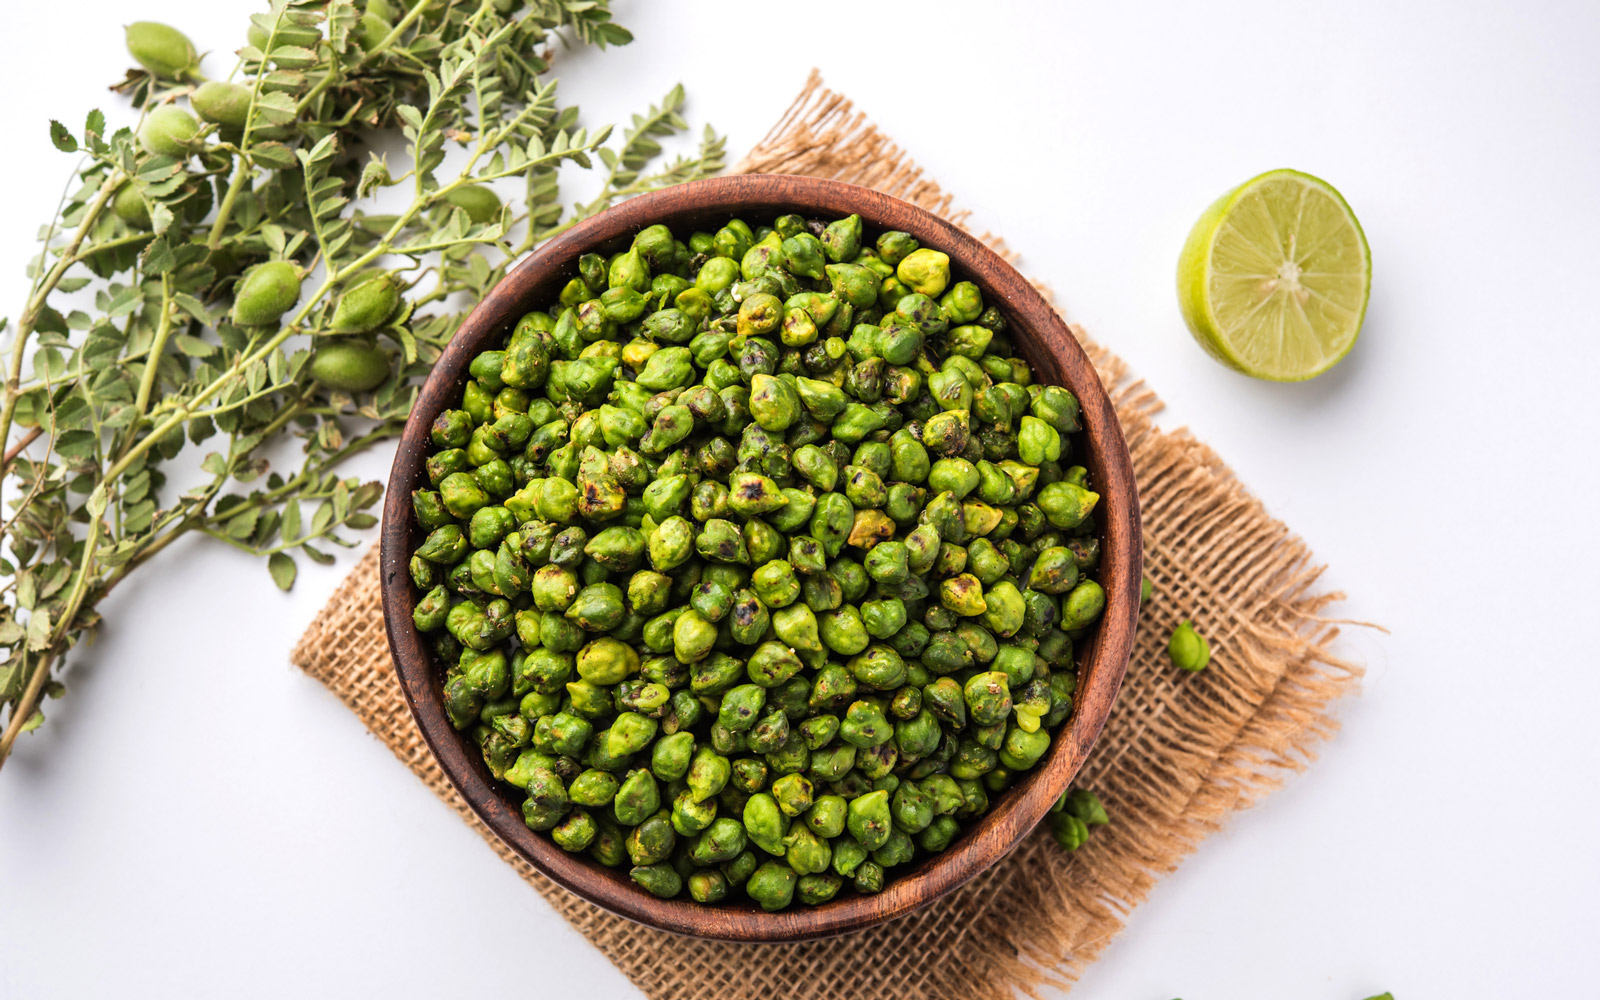 Roasted fresh Green Chickpeas or Chick Peas or harbara in hindi also known as Cicer with pinch of salt and chat masala and lemon, popular snack from India/asia